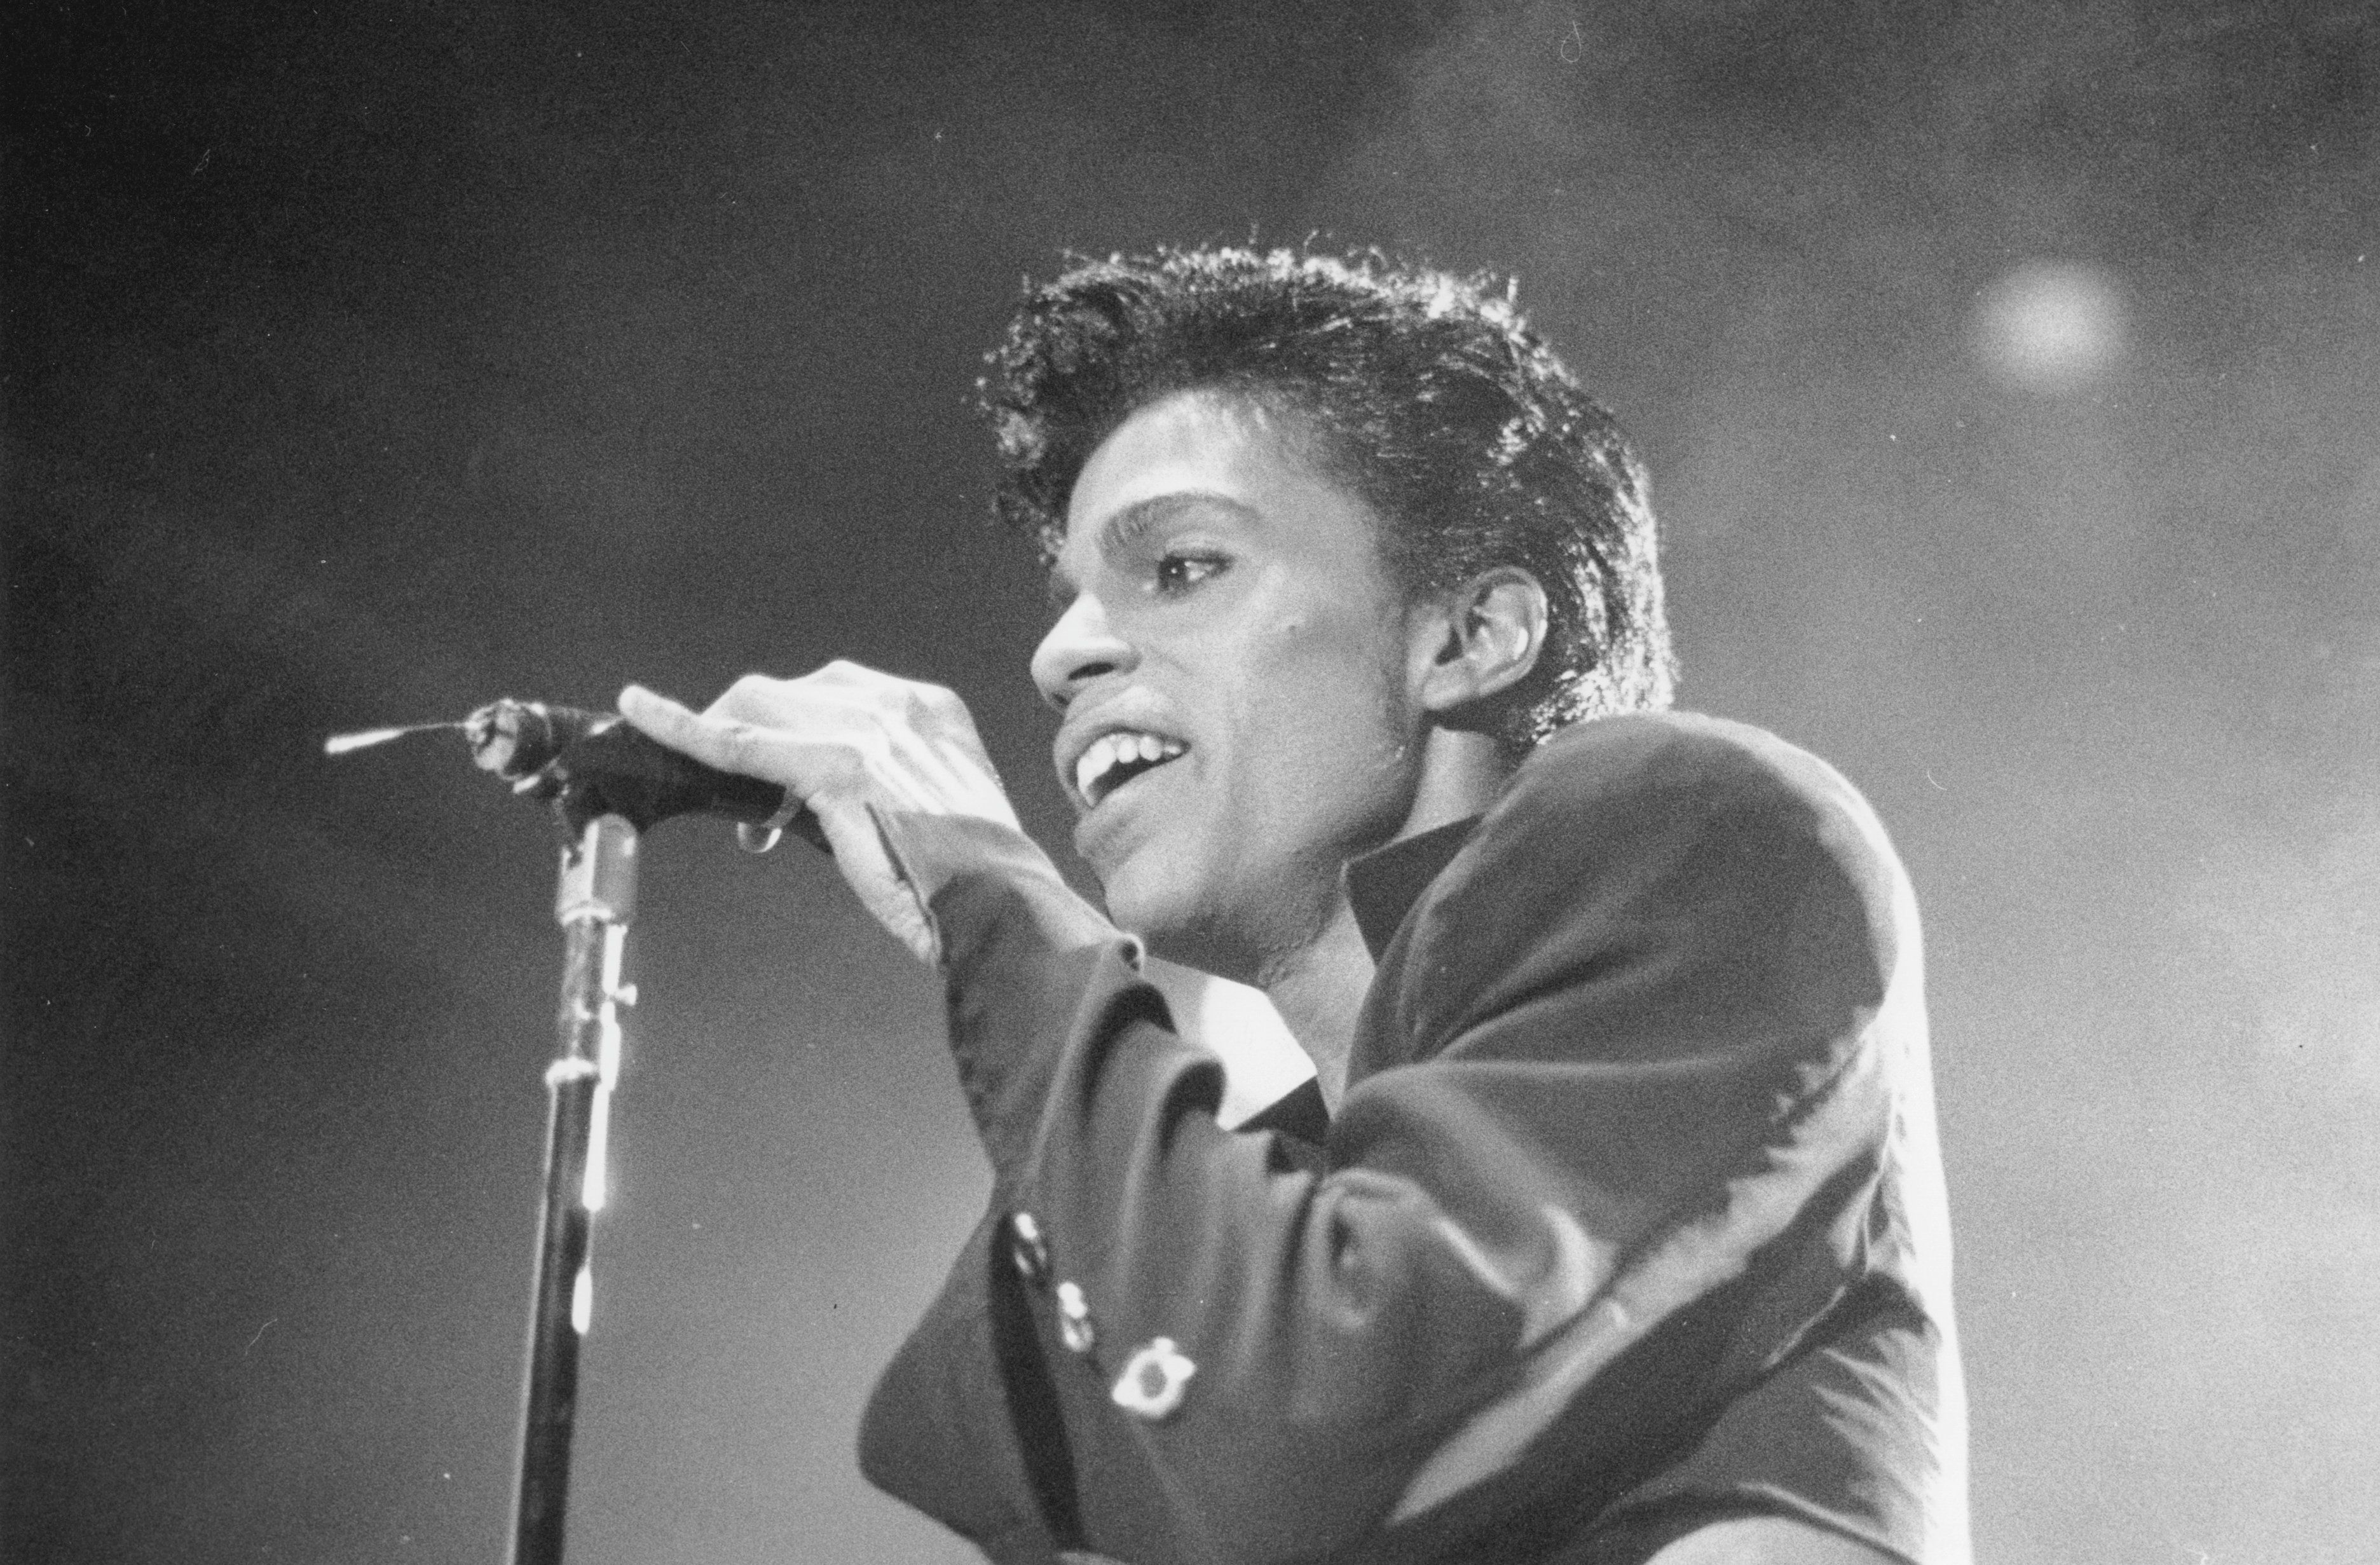 Prince performing in Germany in 1986.